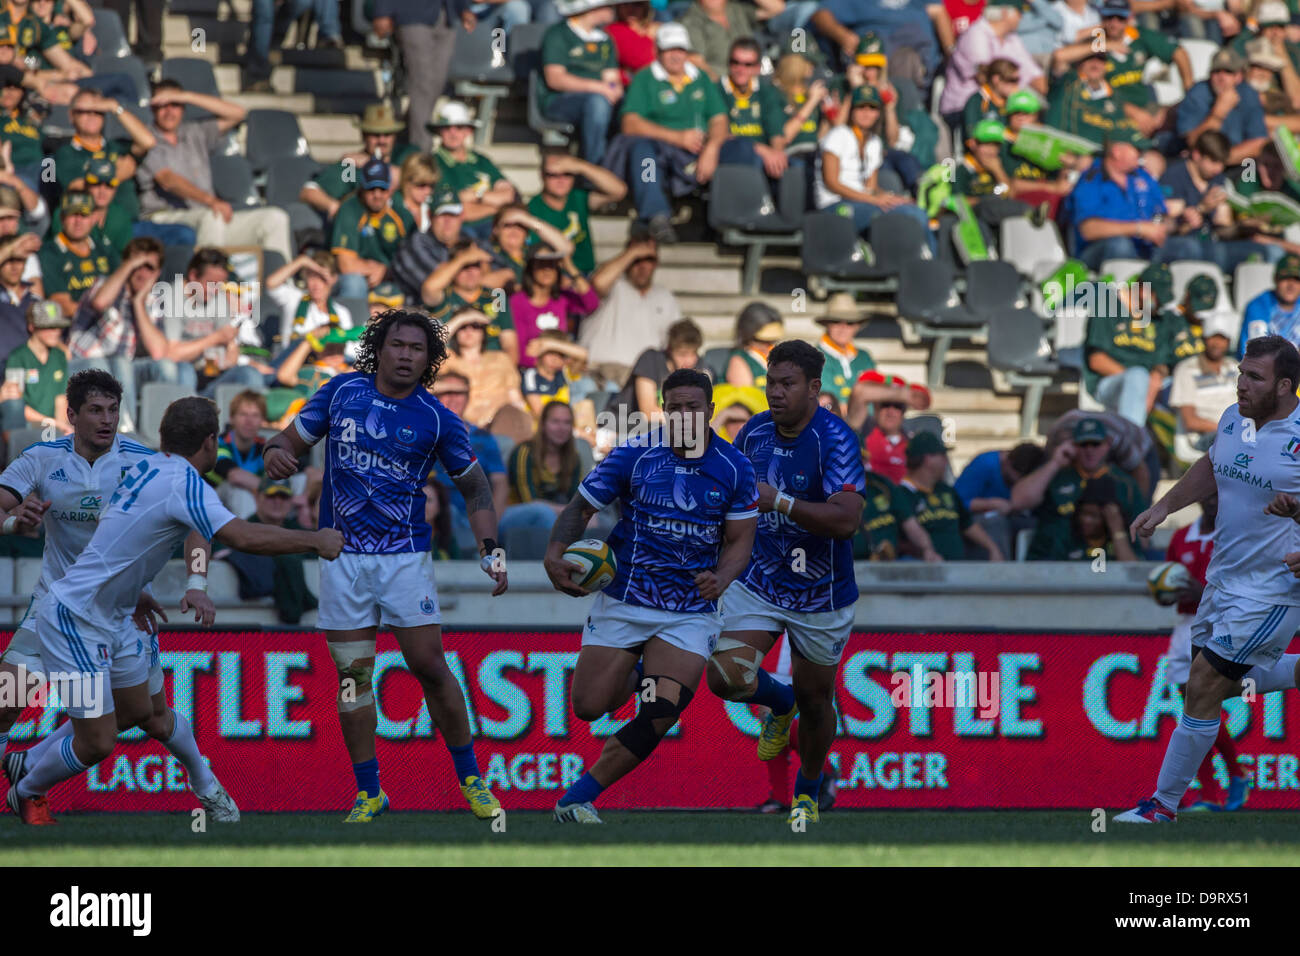 Samoa's Alapati Leiua with the ball during the rugby match between Italy and Samoa at Mbombela Stadium South - Stock Image